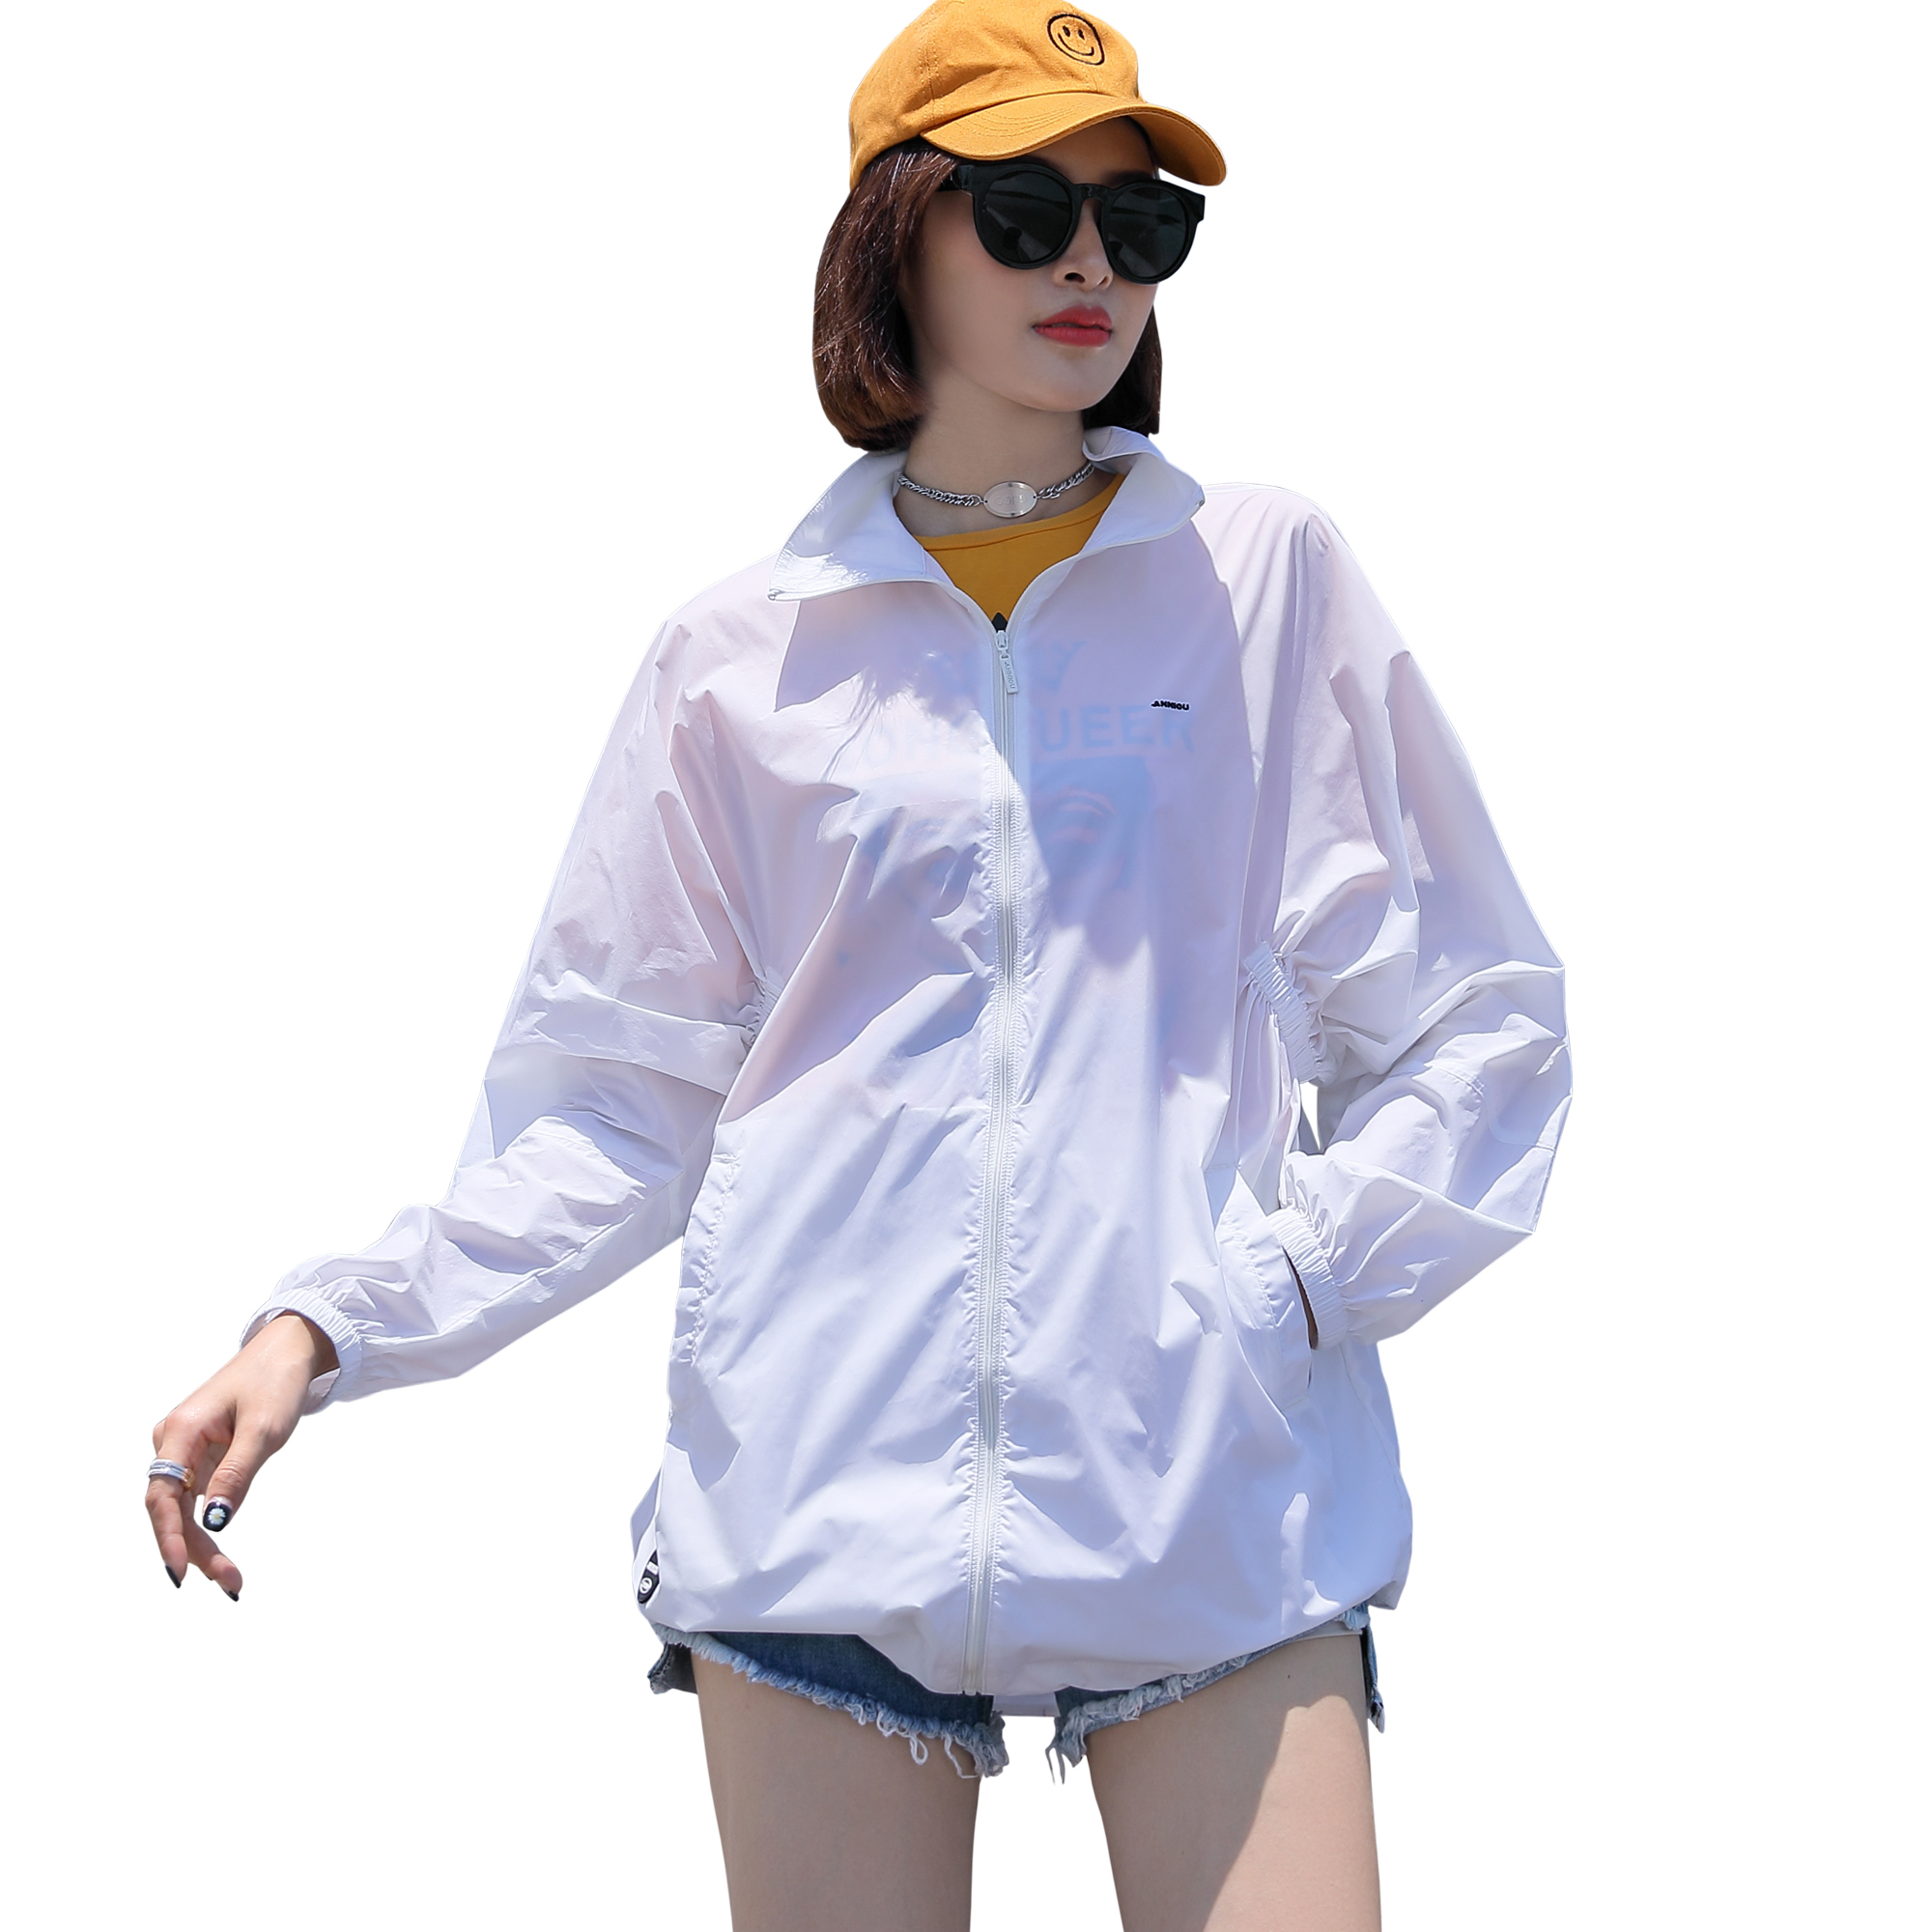 Sidiou Group Hot Sale Fashion Solid Color Sunscreen Clothing With Earphone <strong>Hole</strong> Outdoor UPF50+ Anti UV Skin Windbreak for Women